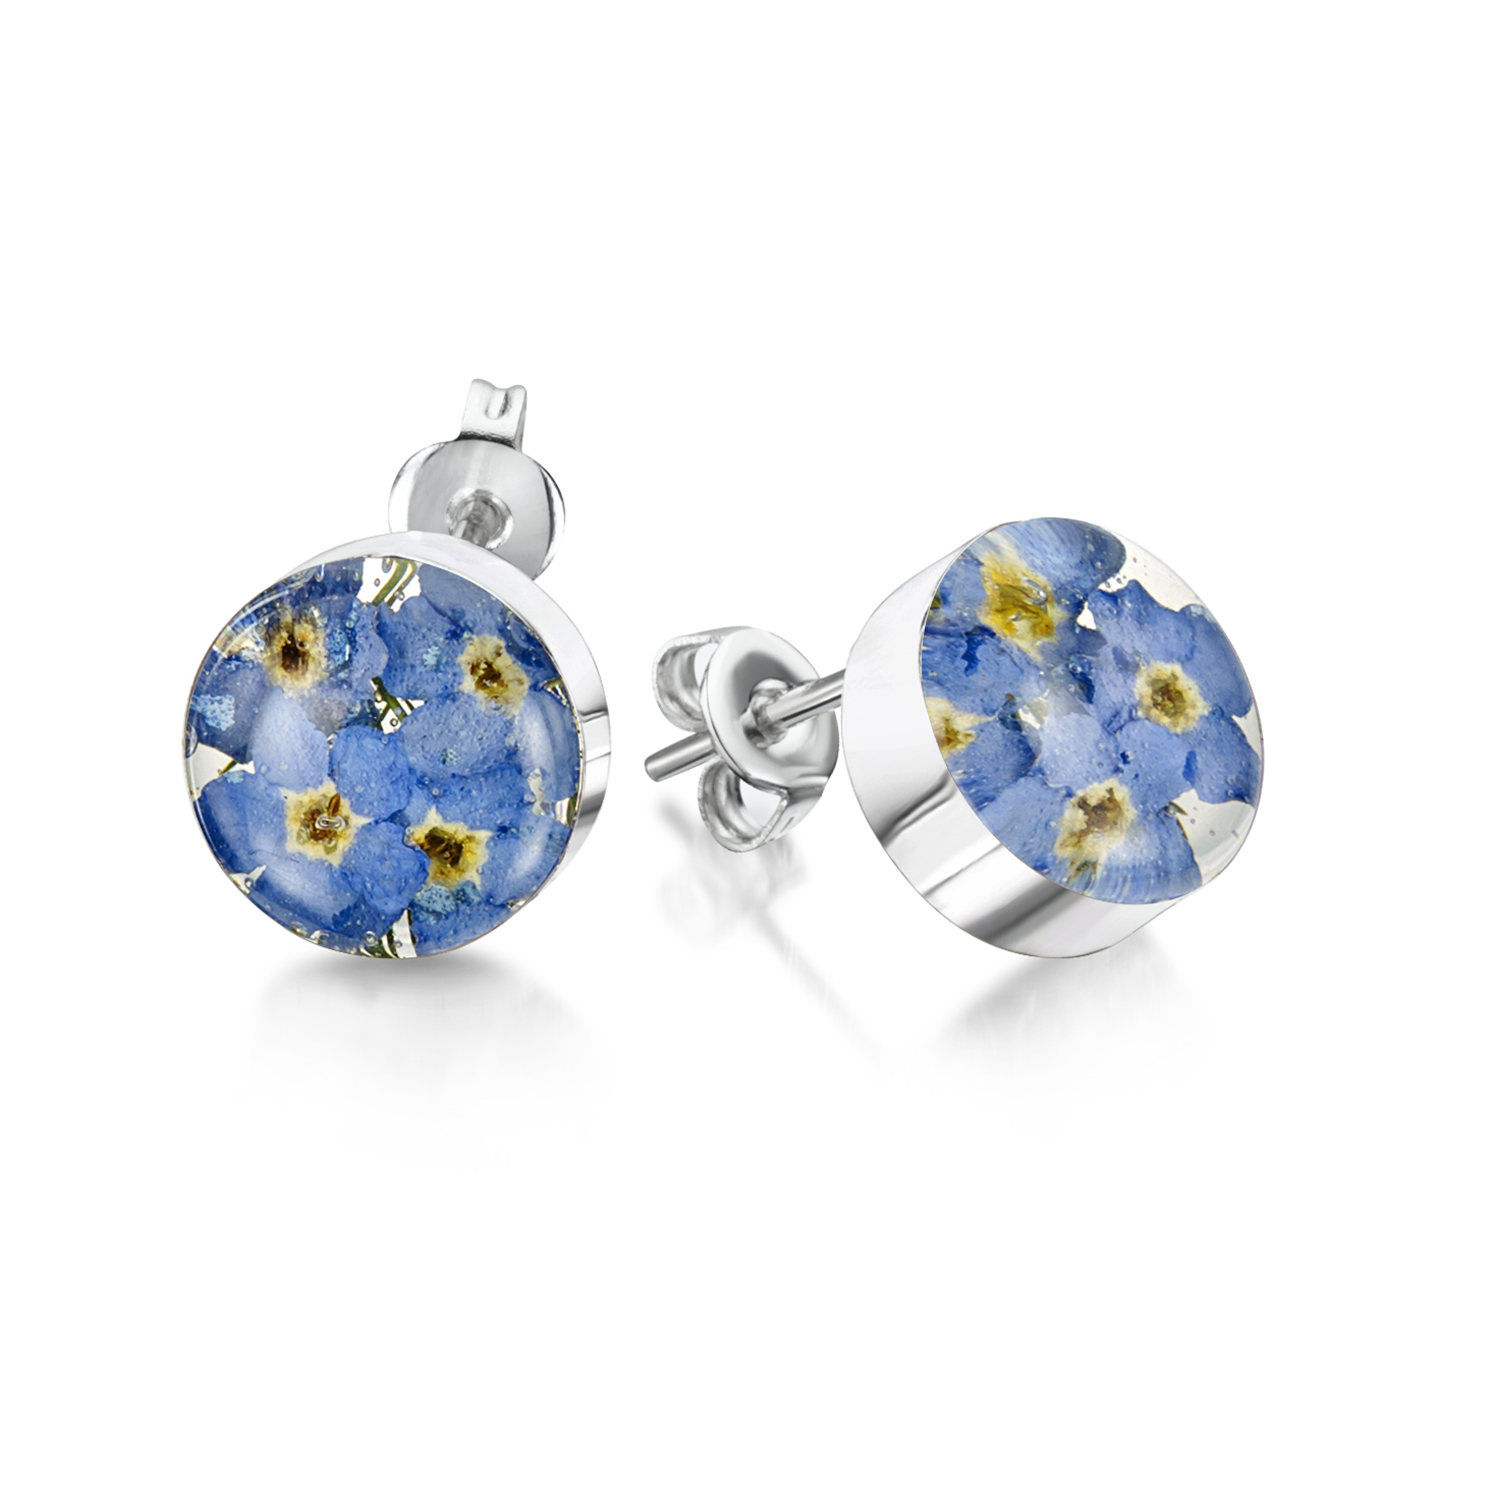 Shrieking Violet – Forget-me-not Sterling Silver Stud Round Earrings in Gift Box